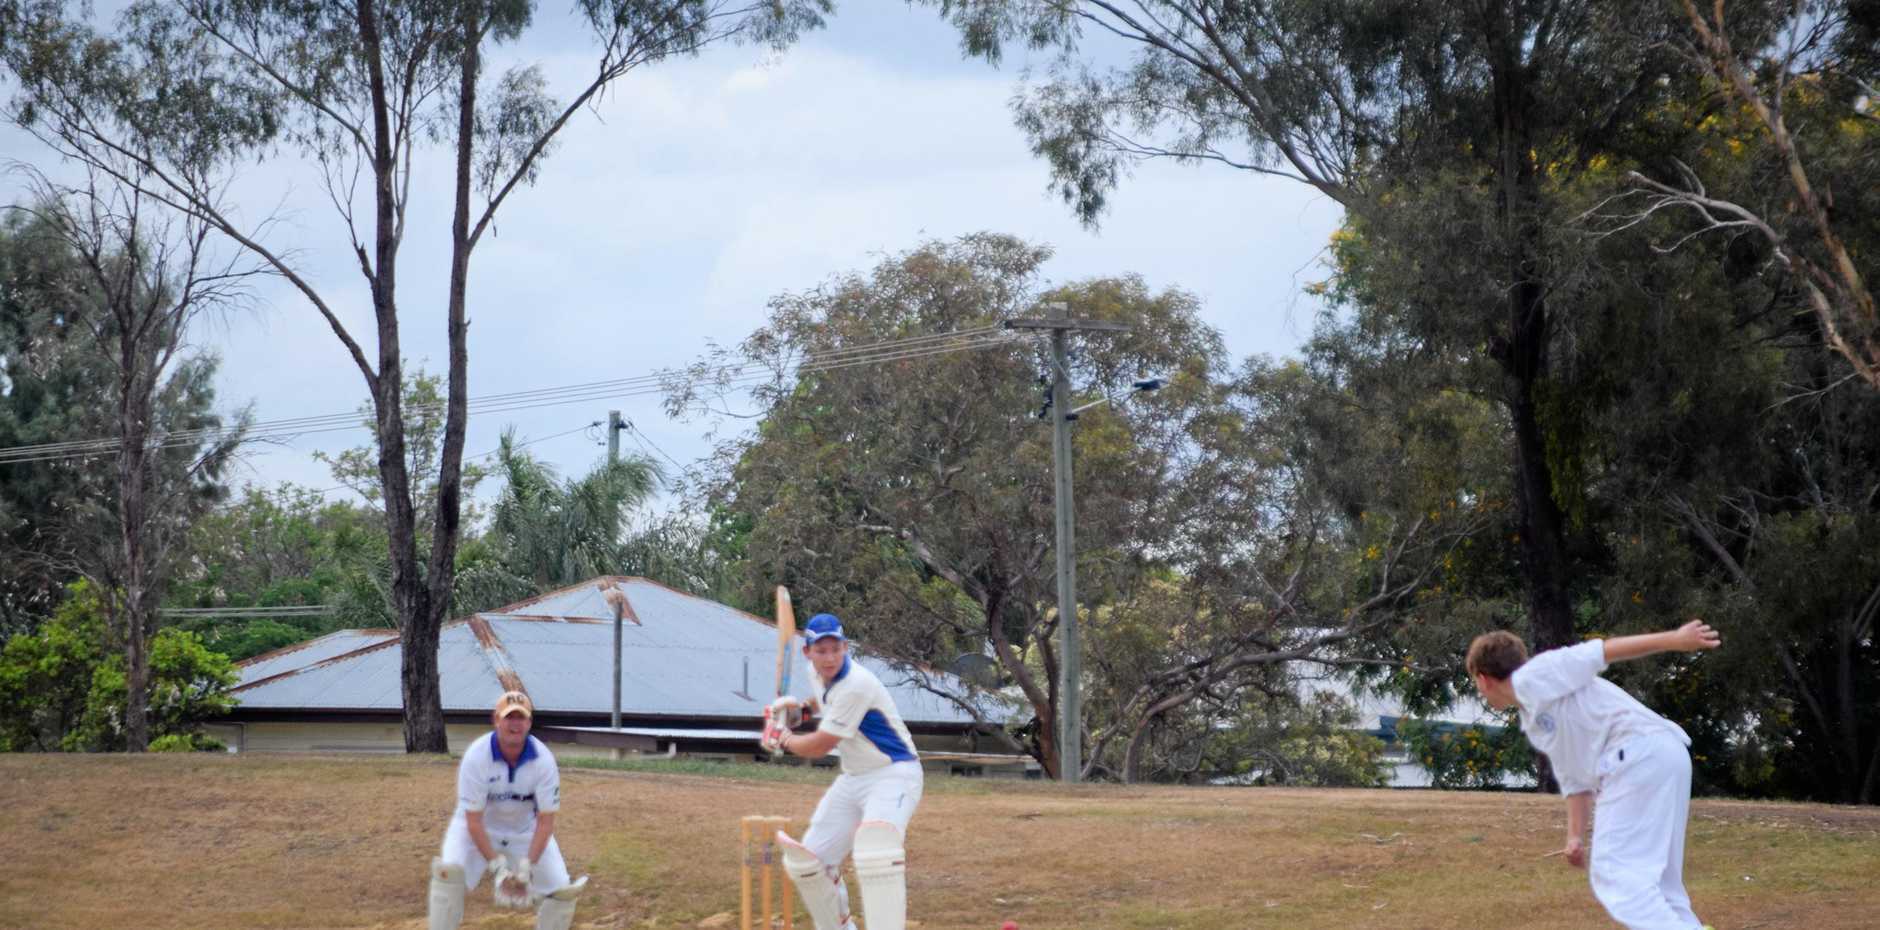 KNOCK: Brendan Buckley led from the front with a half-century for Colts.